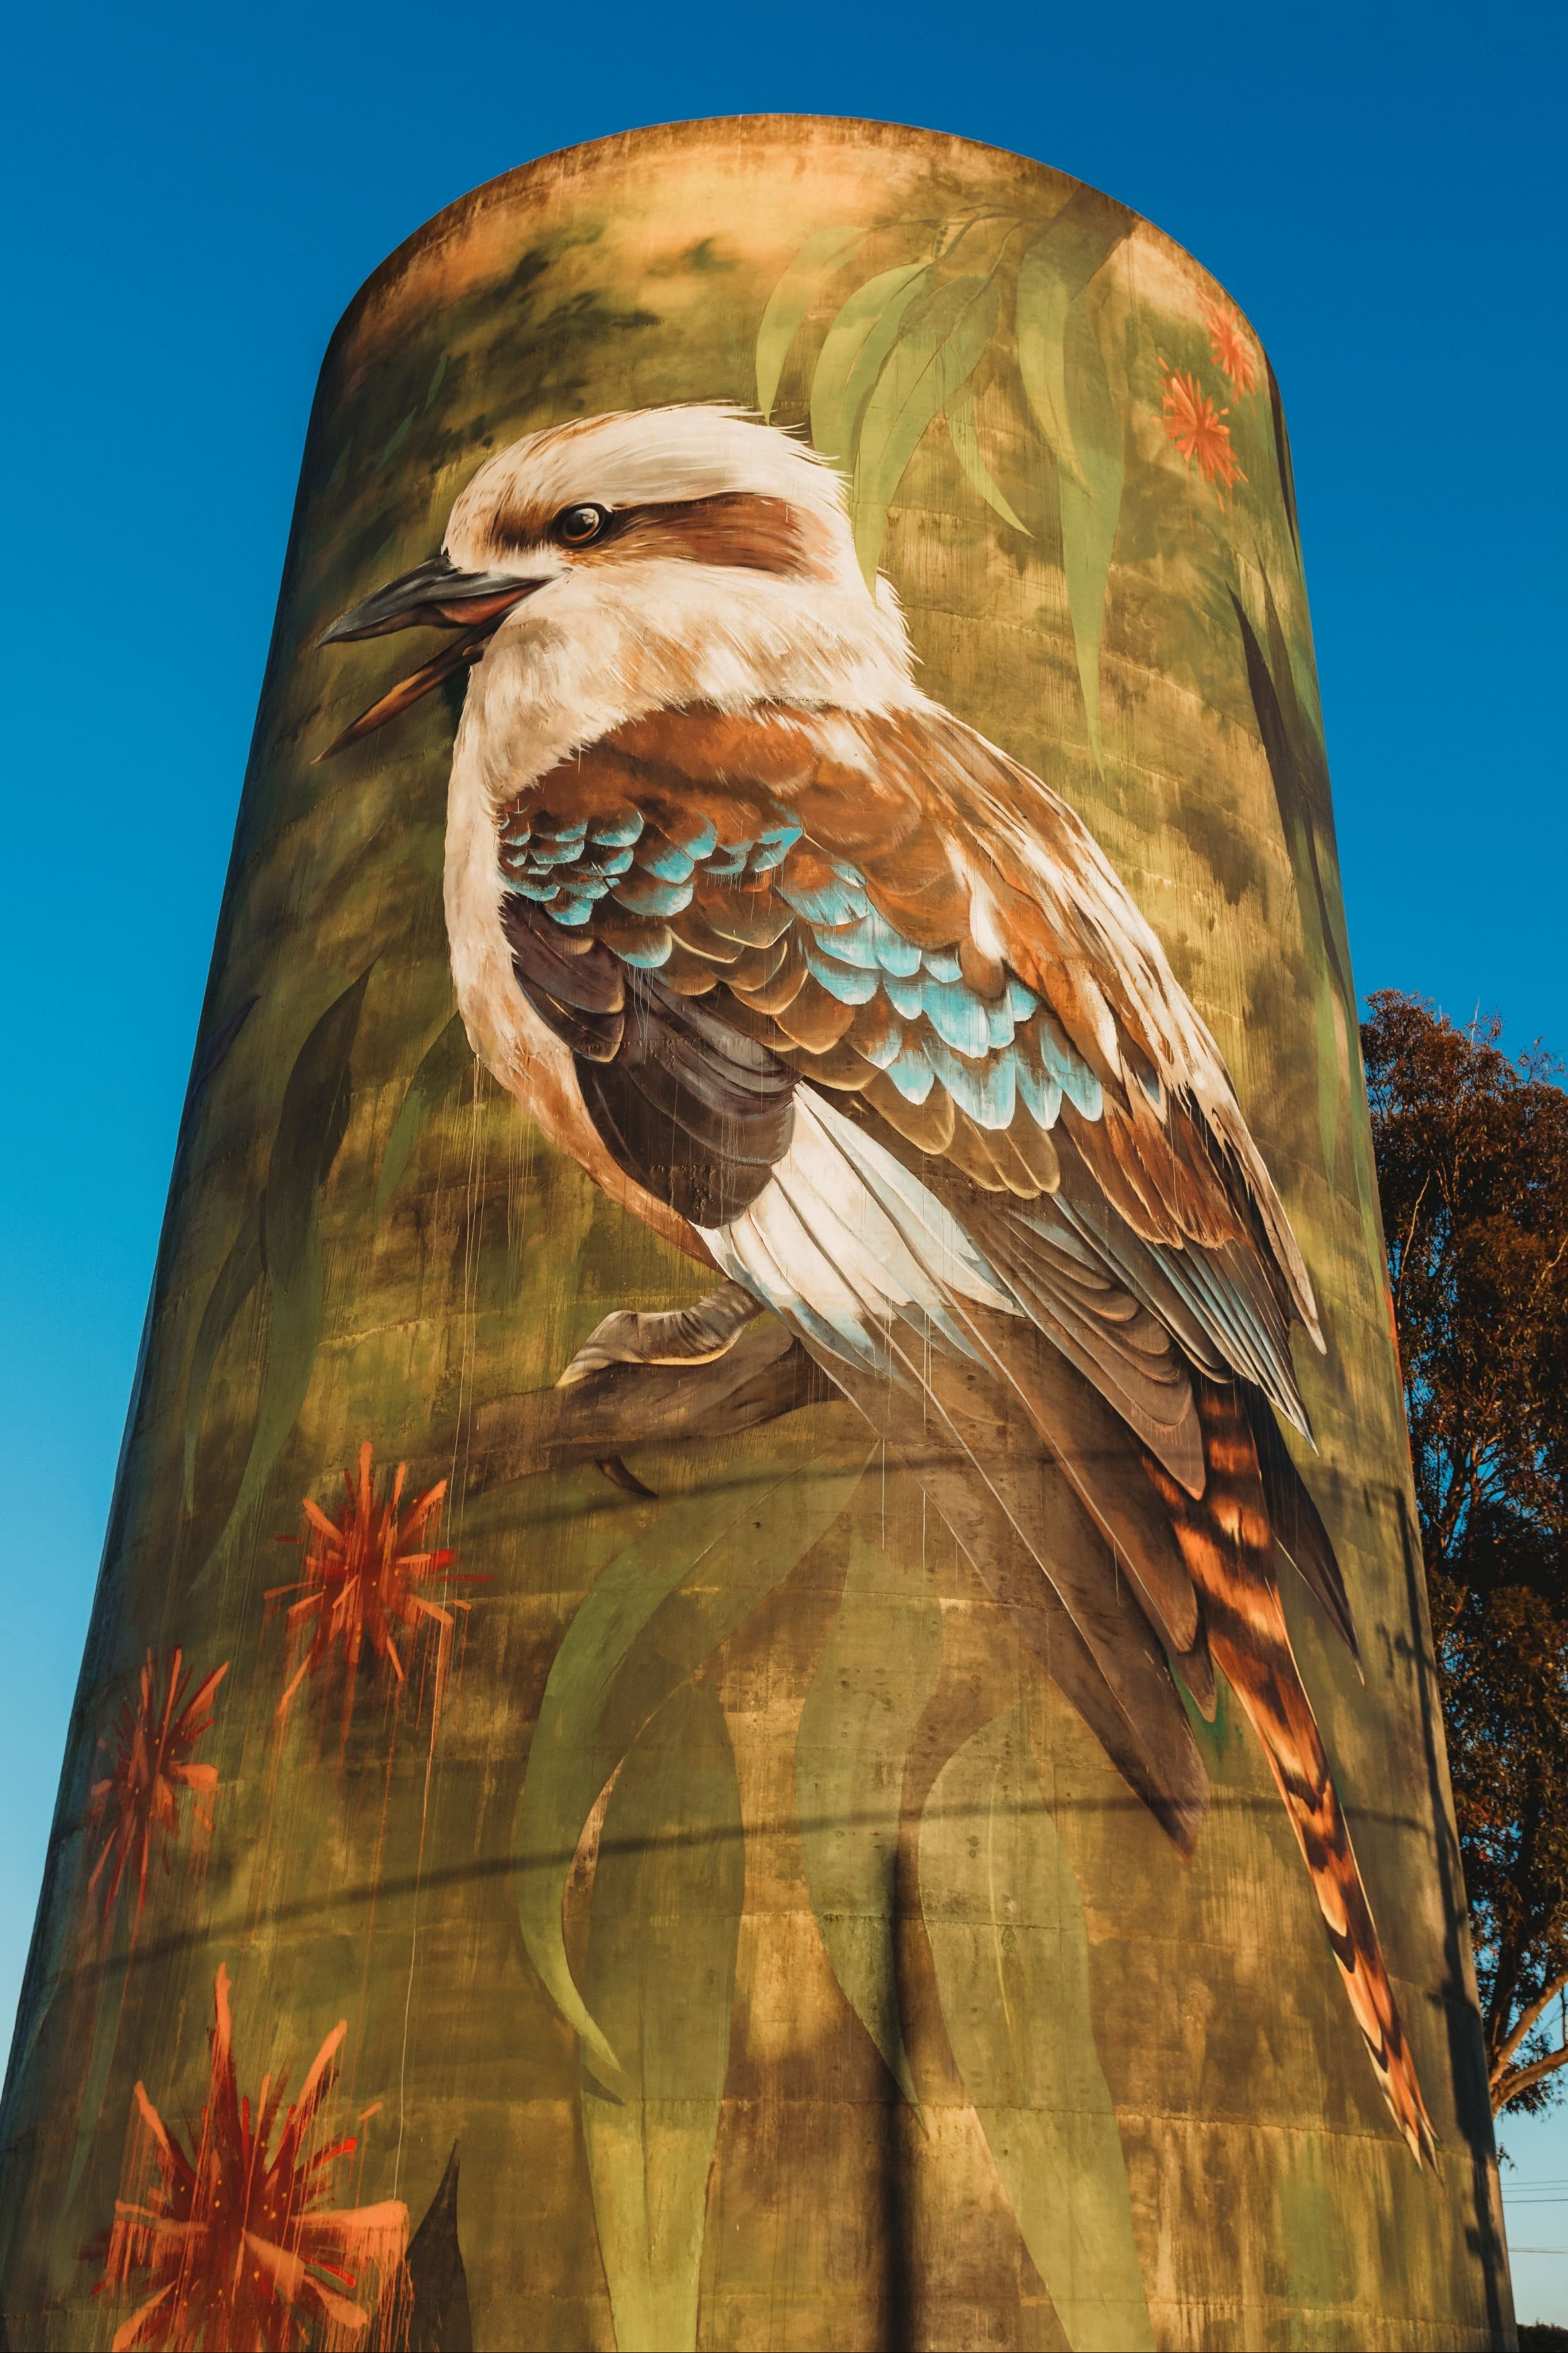 Deniliquin Water Tower Mural - Australia Accommodation